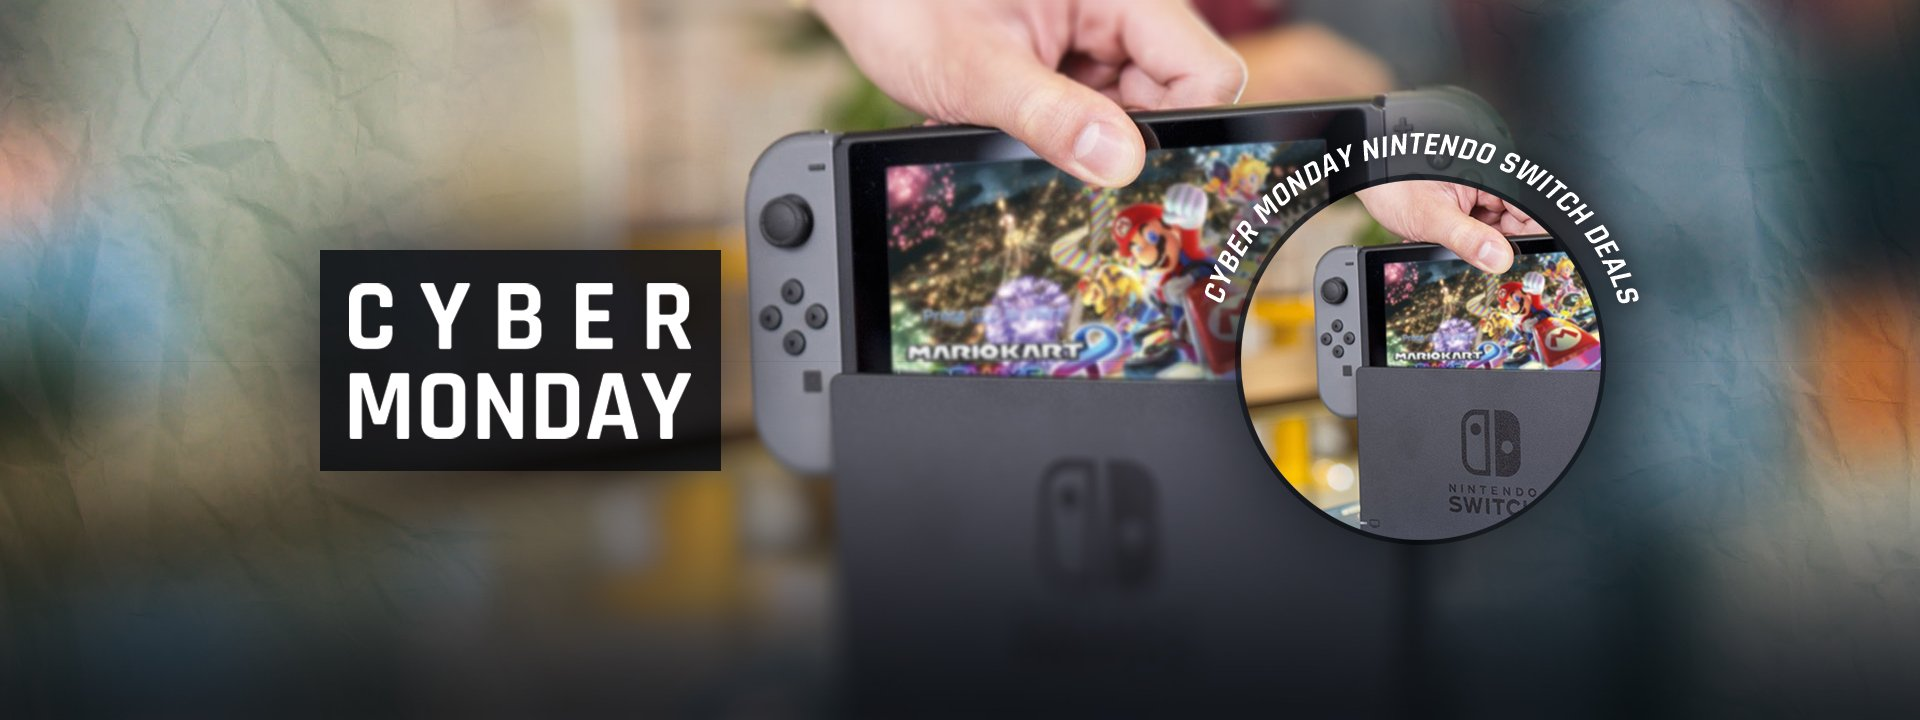 Best Cyber Monday 2018 Nintendo Switch Deals Shacknews